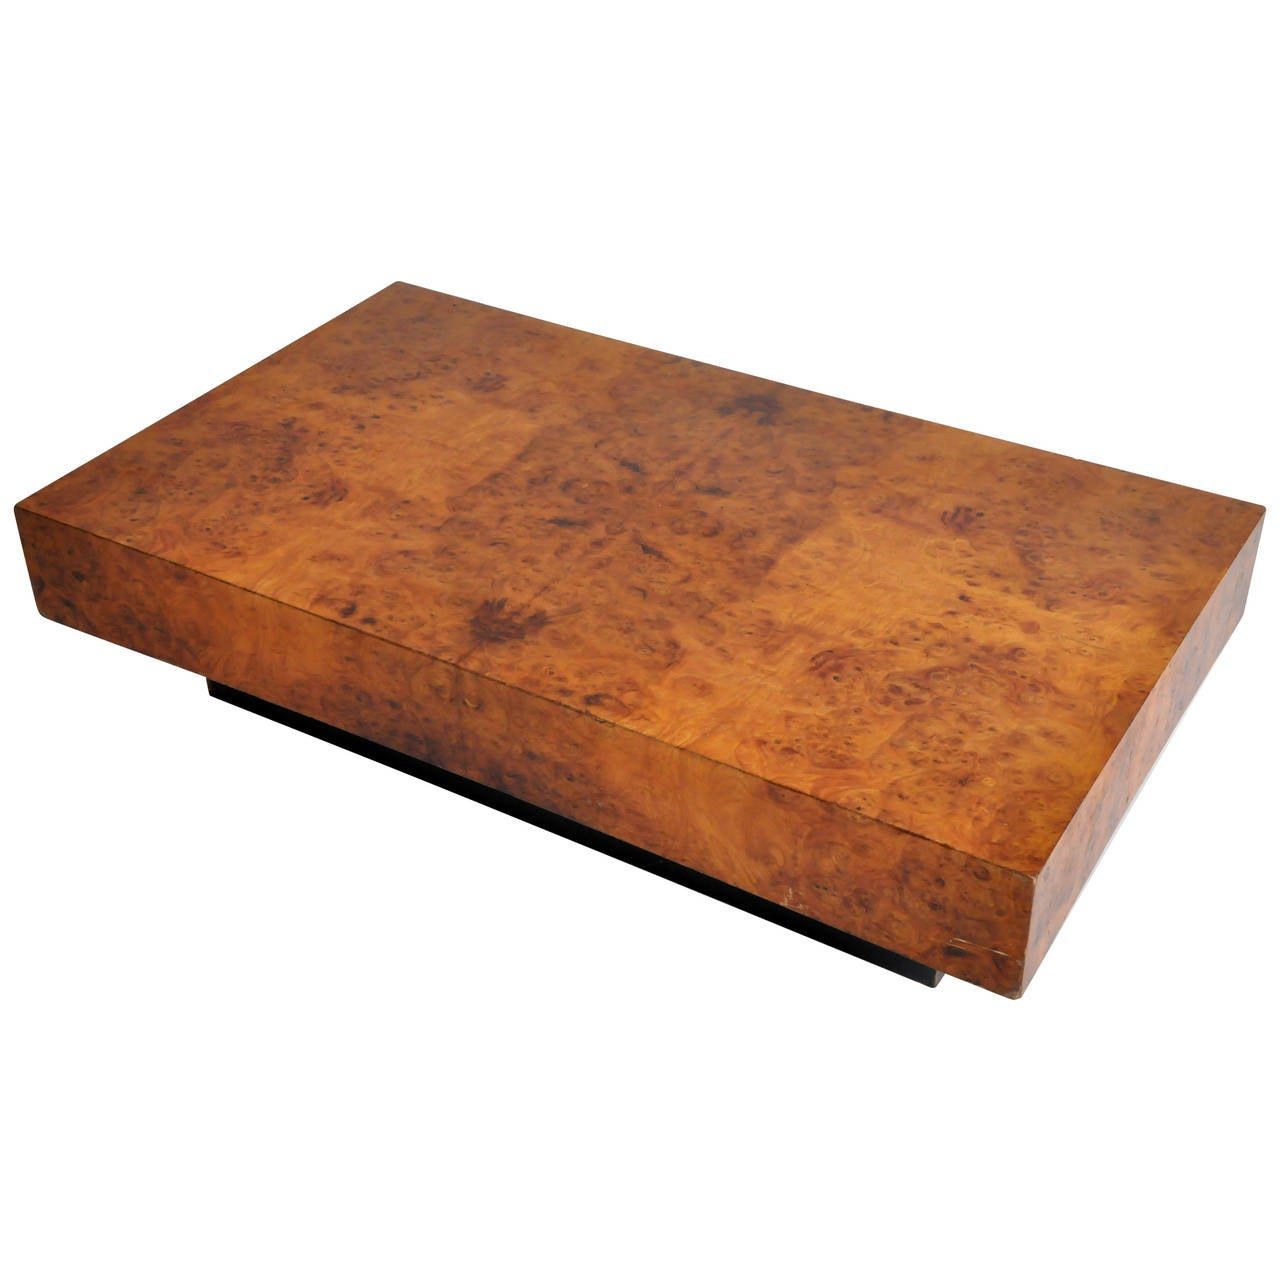 Small Modern Coffee Table 1960s For Sale At 1stdibs: Mid-Century Modern Coffee Table For Sale At 1stdibs